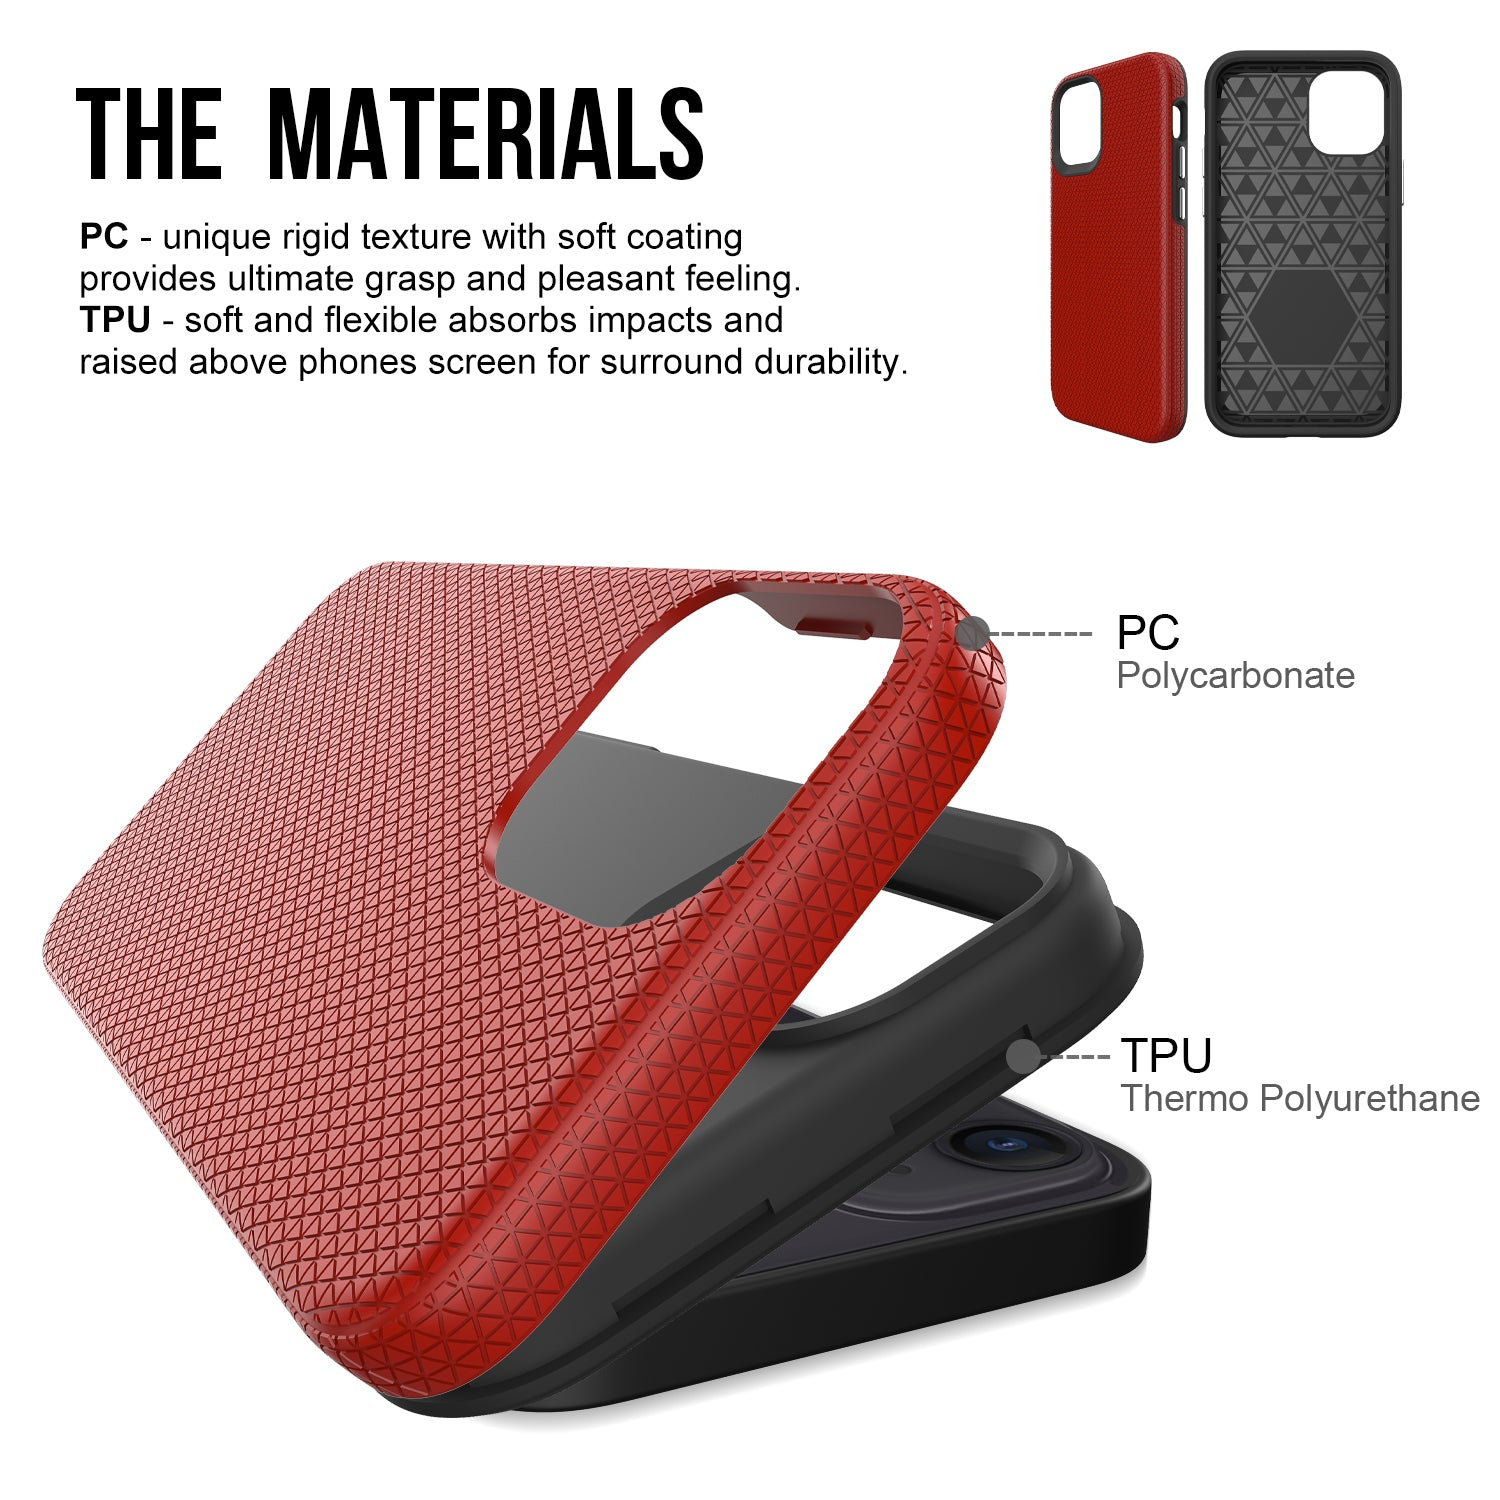 ZEOS Sphinx Dual Layer Case for iPhone 12 Mini